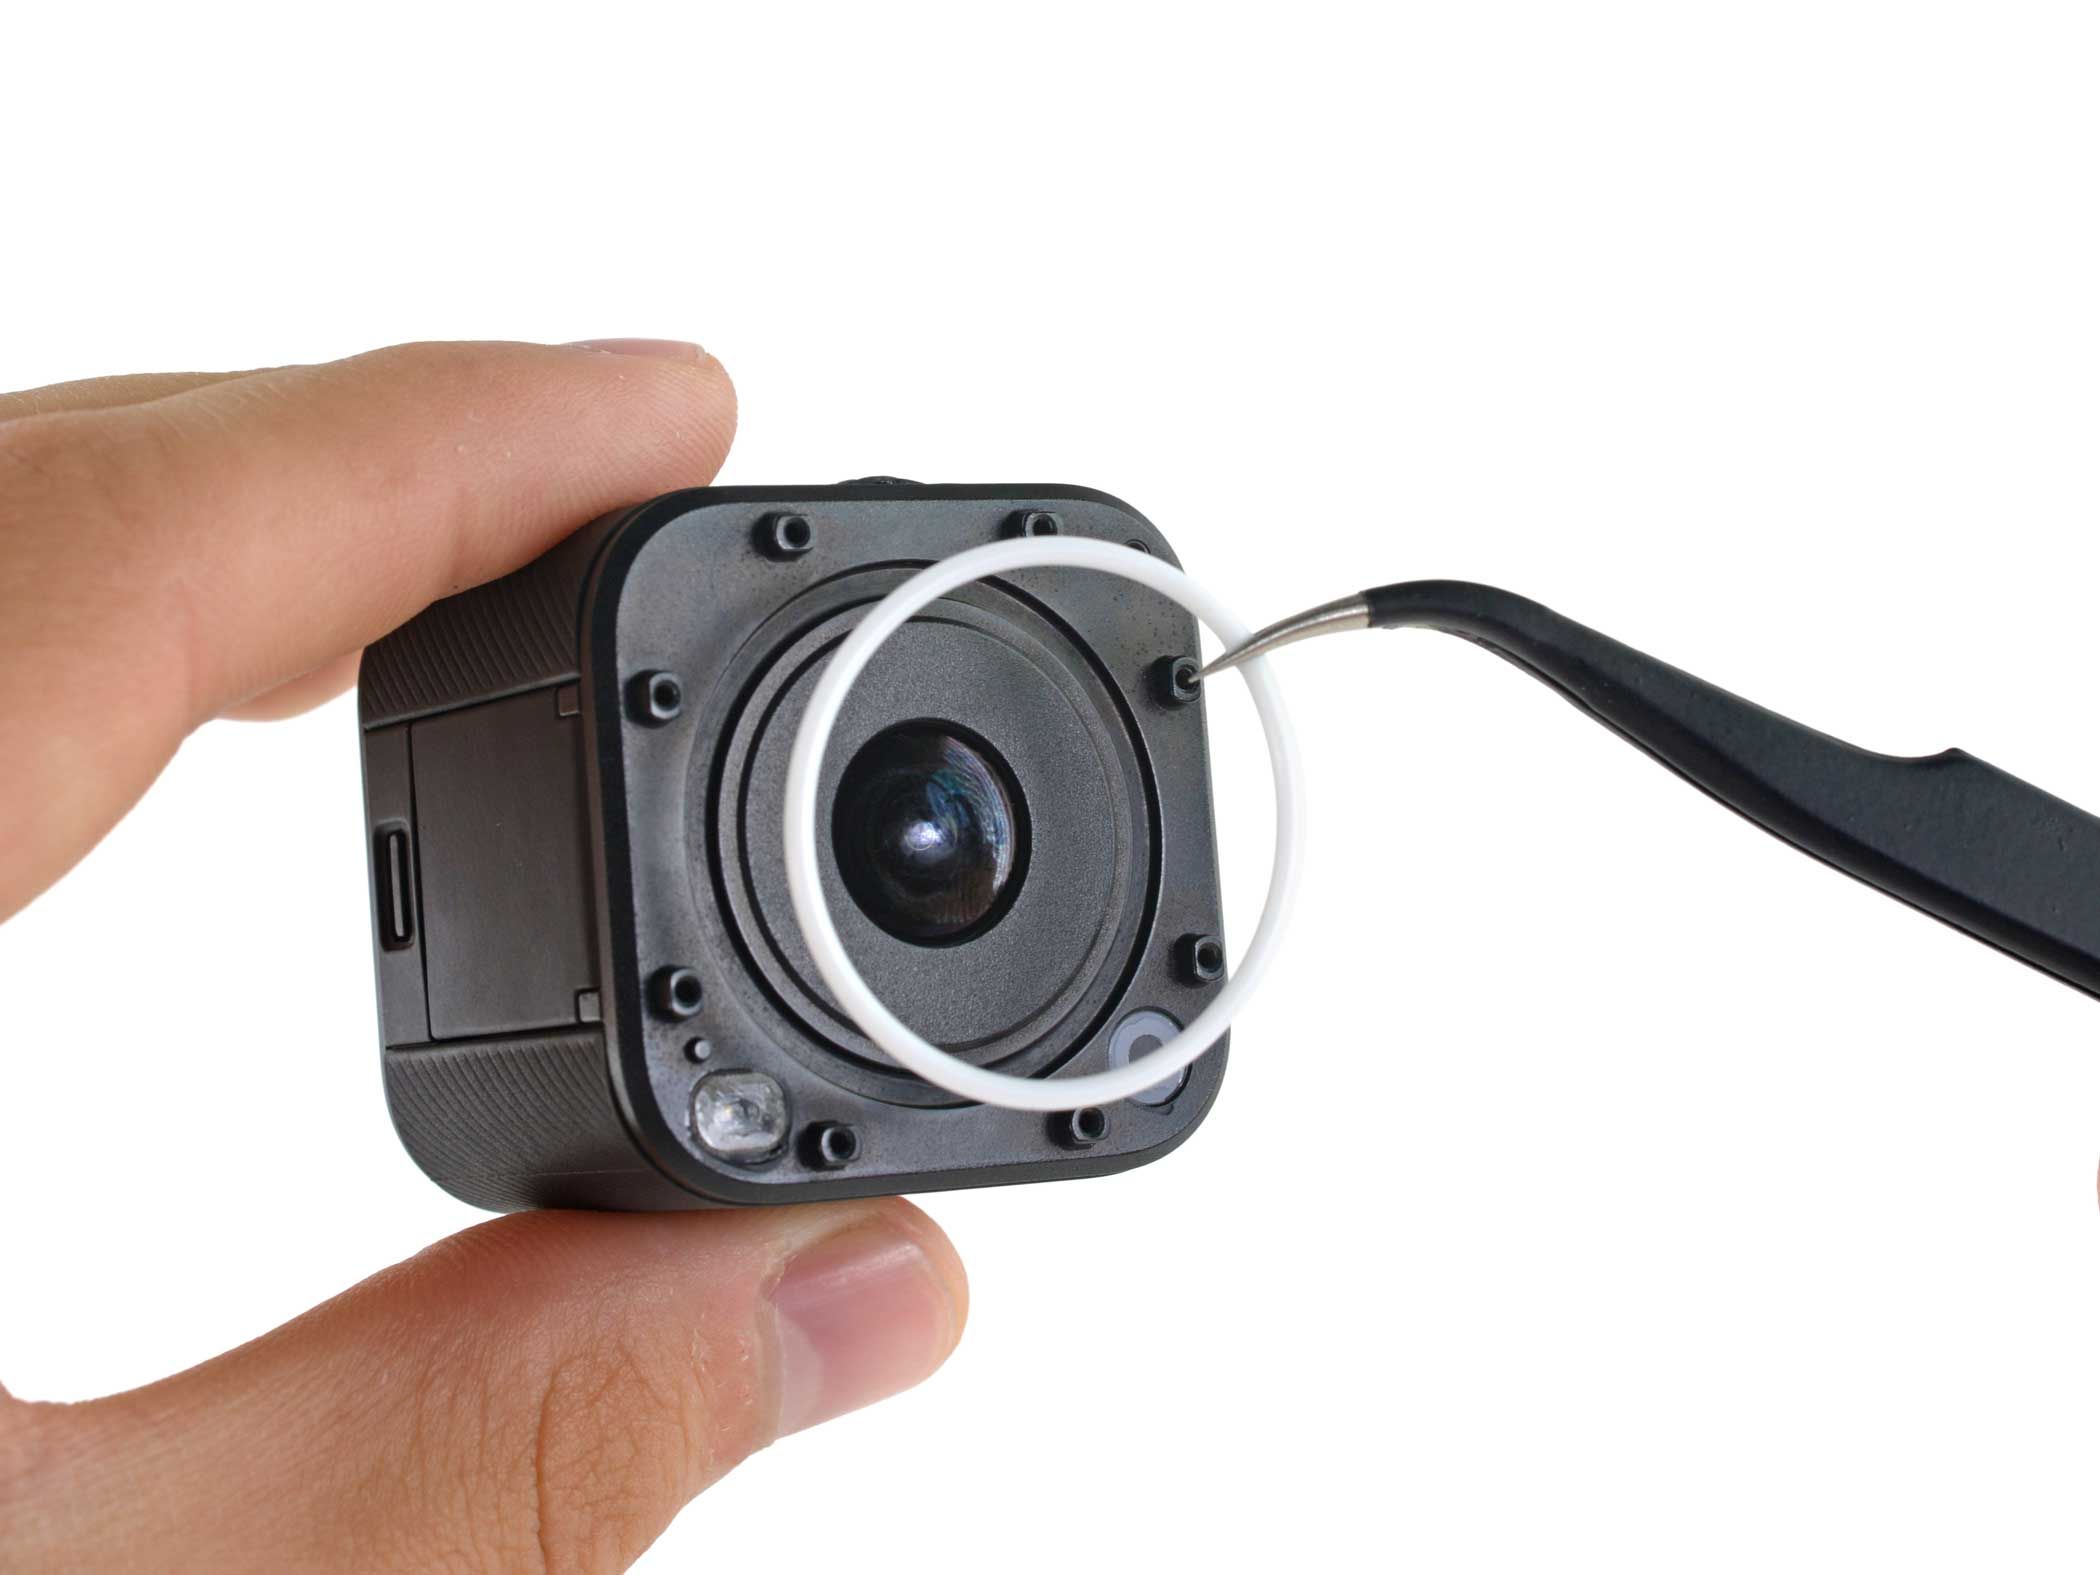 The GoPro HERO4 Session is carefully disassembled.